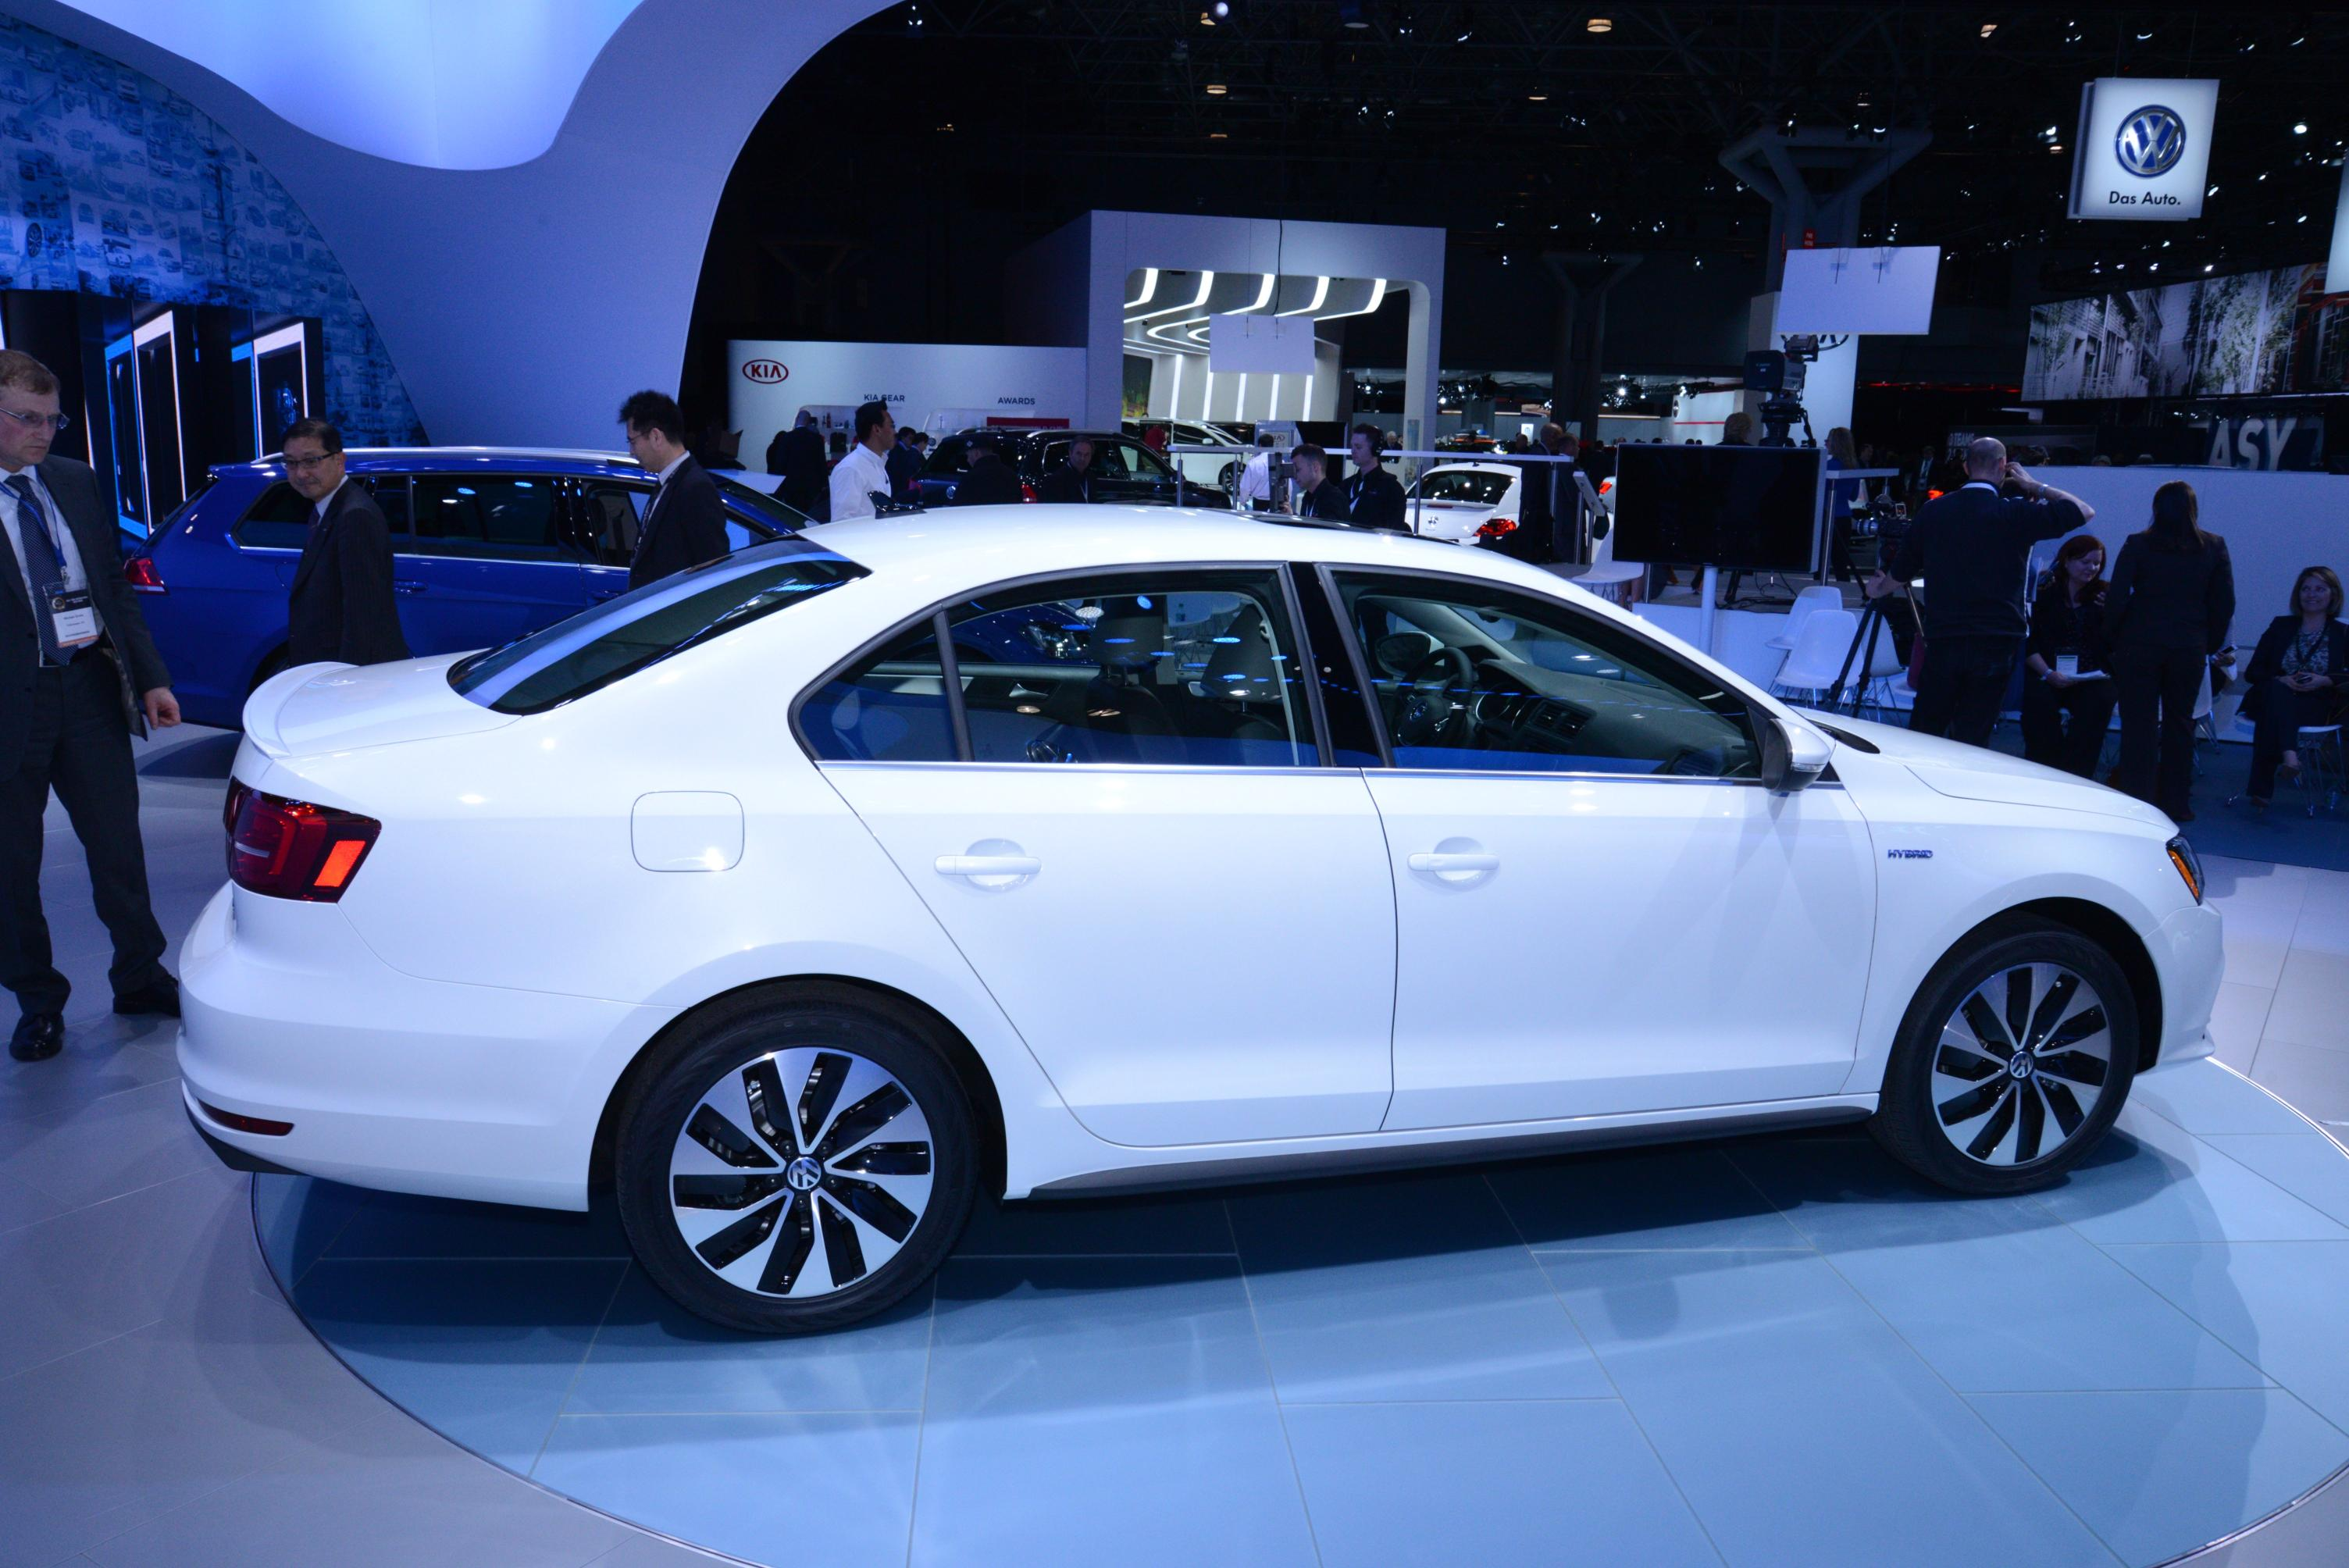 2015 Volkswagen Jetta Earns Top Safety Pick+ Recognition